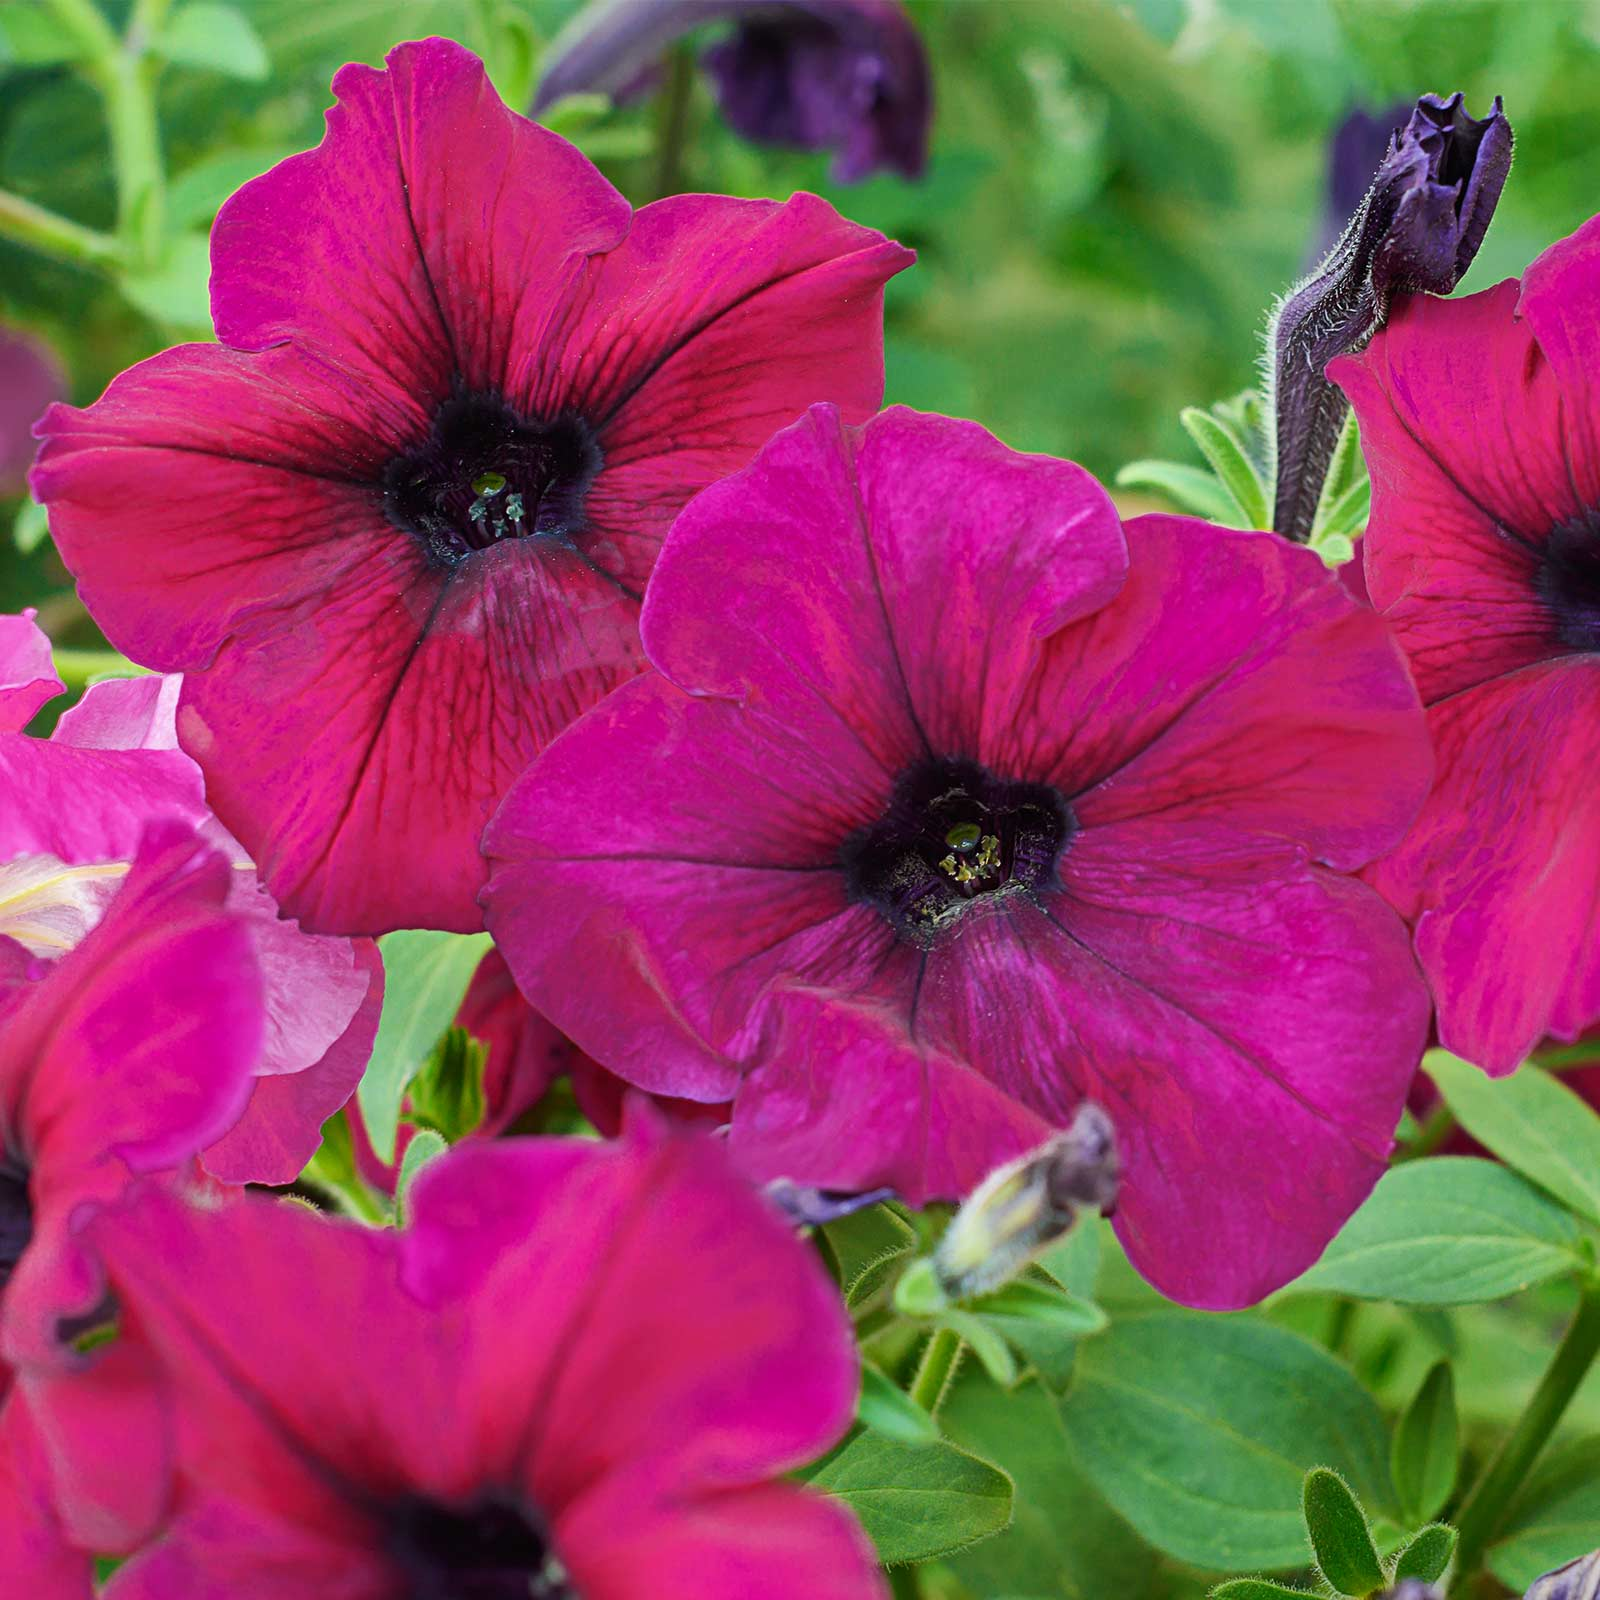 Petunia - Madness Series Flower Garden Seed - 1000 Pelleted Seeds - Burgundy Star Blooms - Annual Flowers - Single Floribunda Petunias